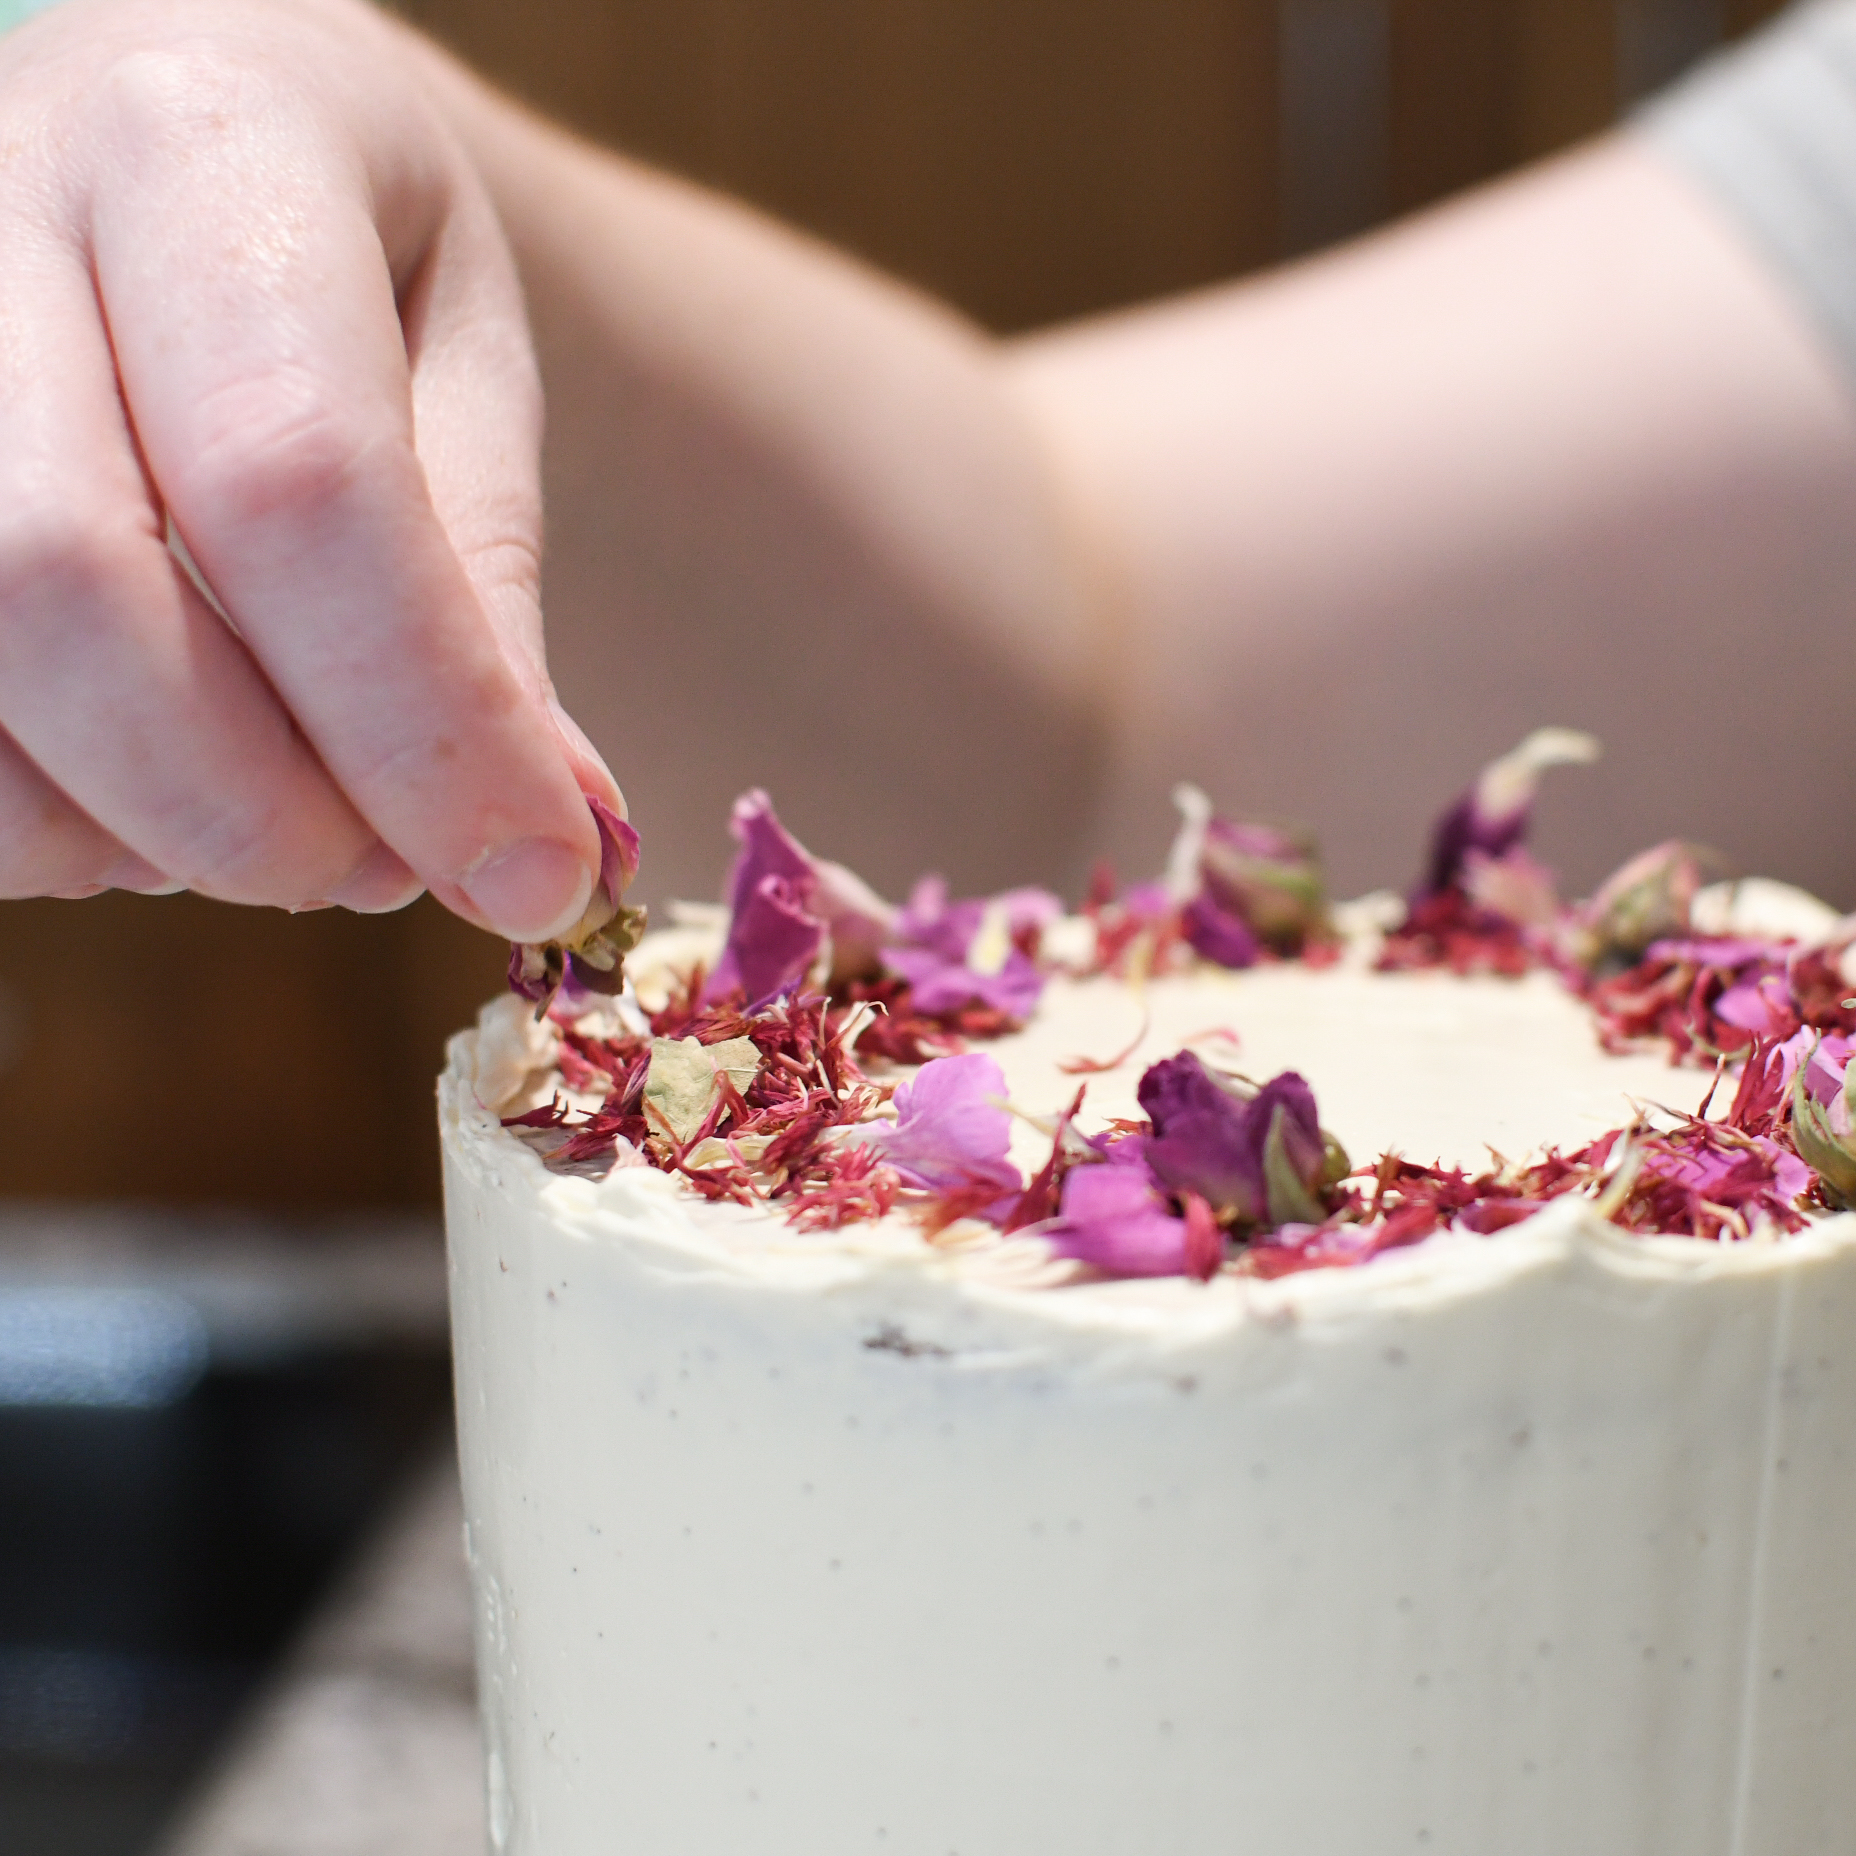 Small Wedding Cake Being Decorated with Dried Rose Petals